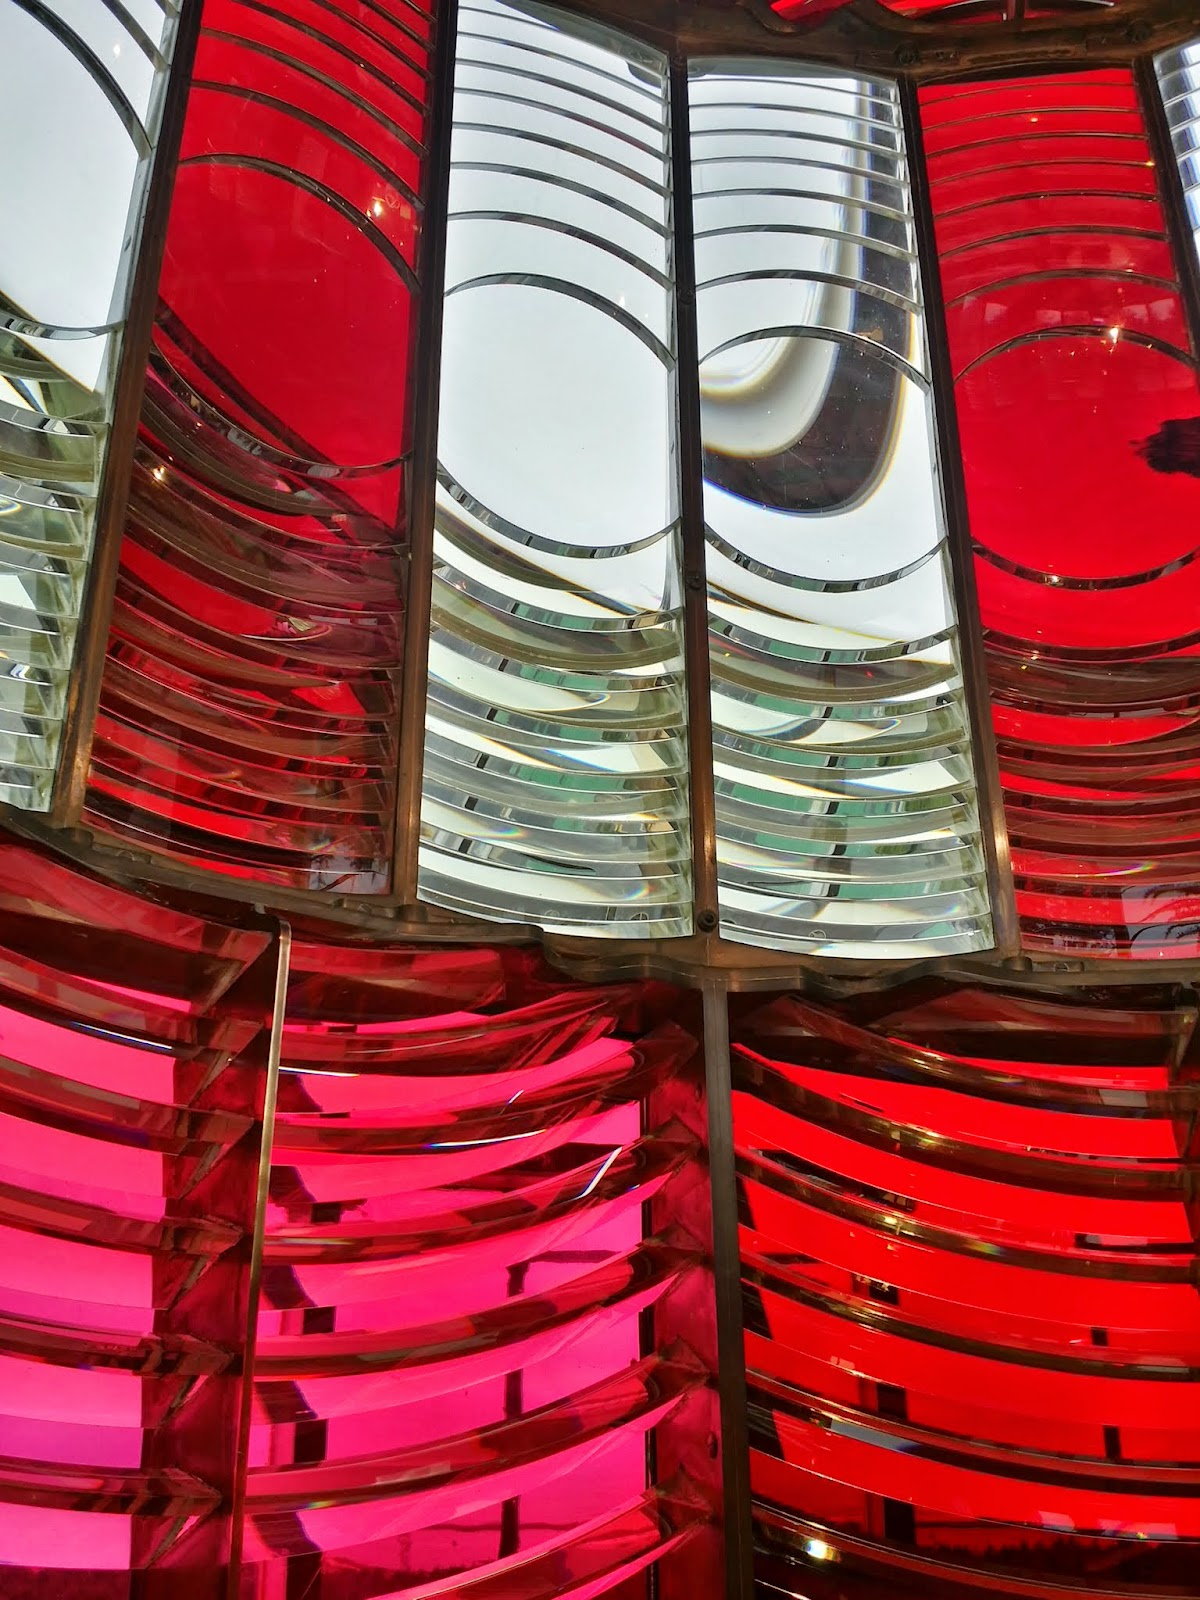 Umpqua River Lighthouse lens